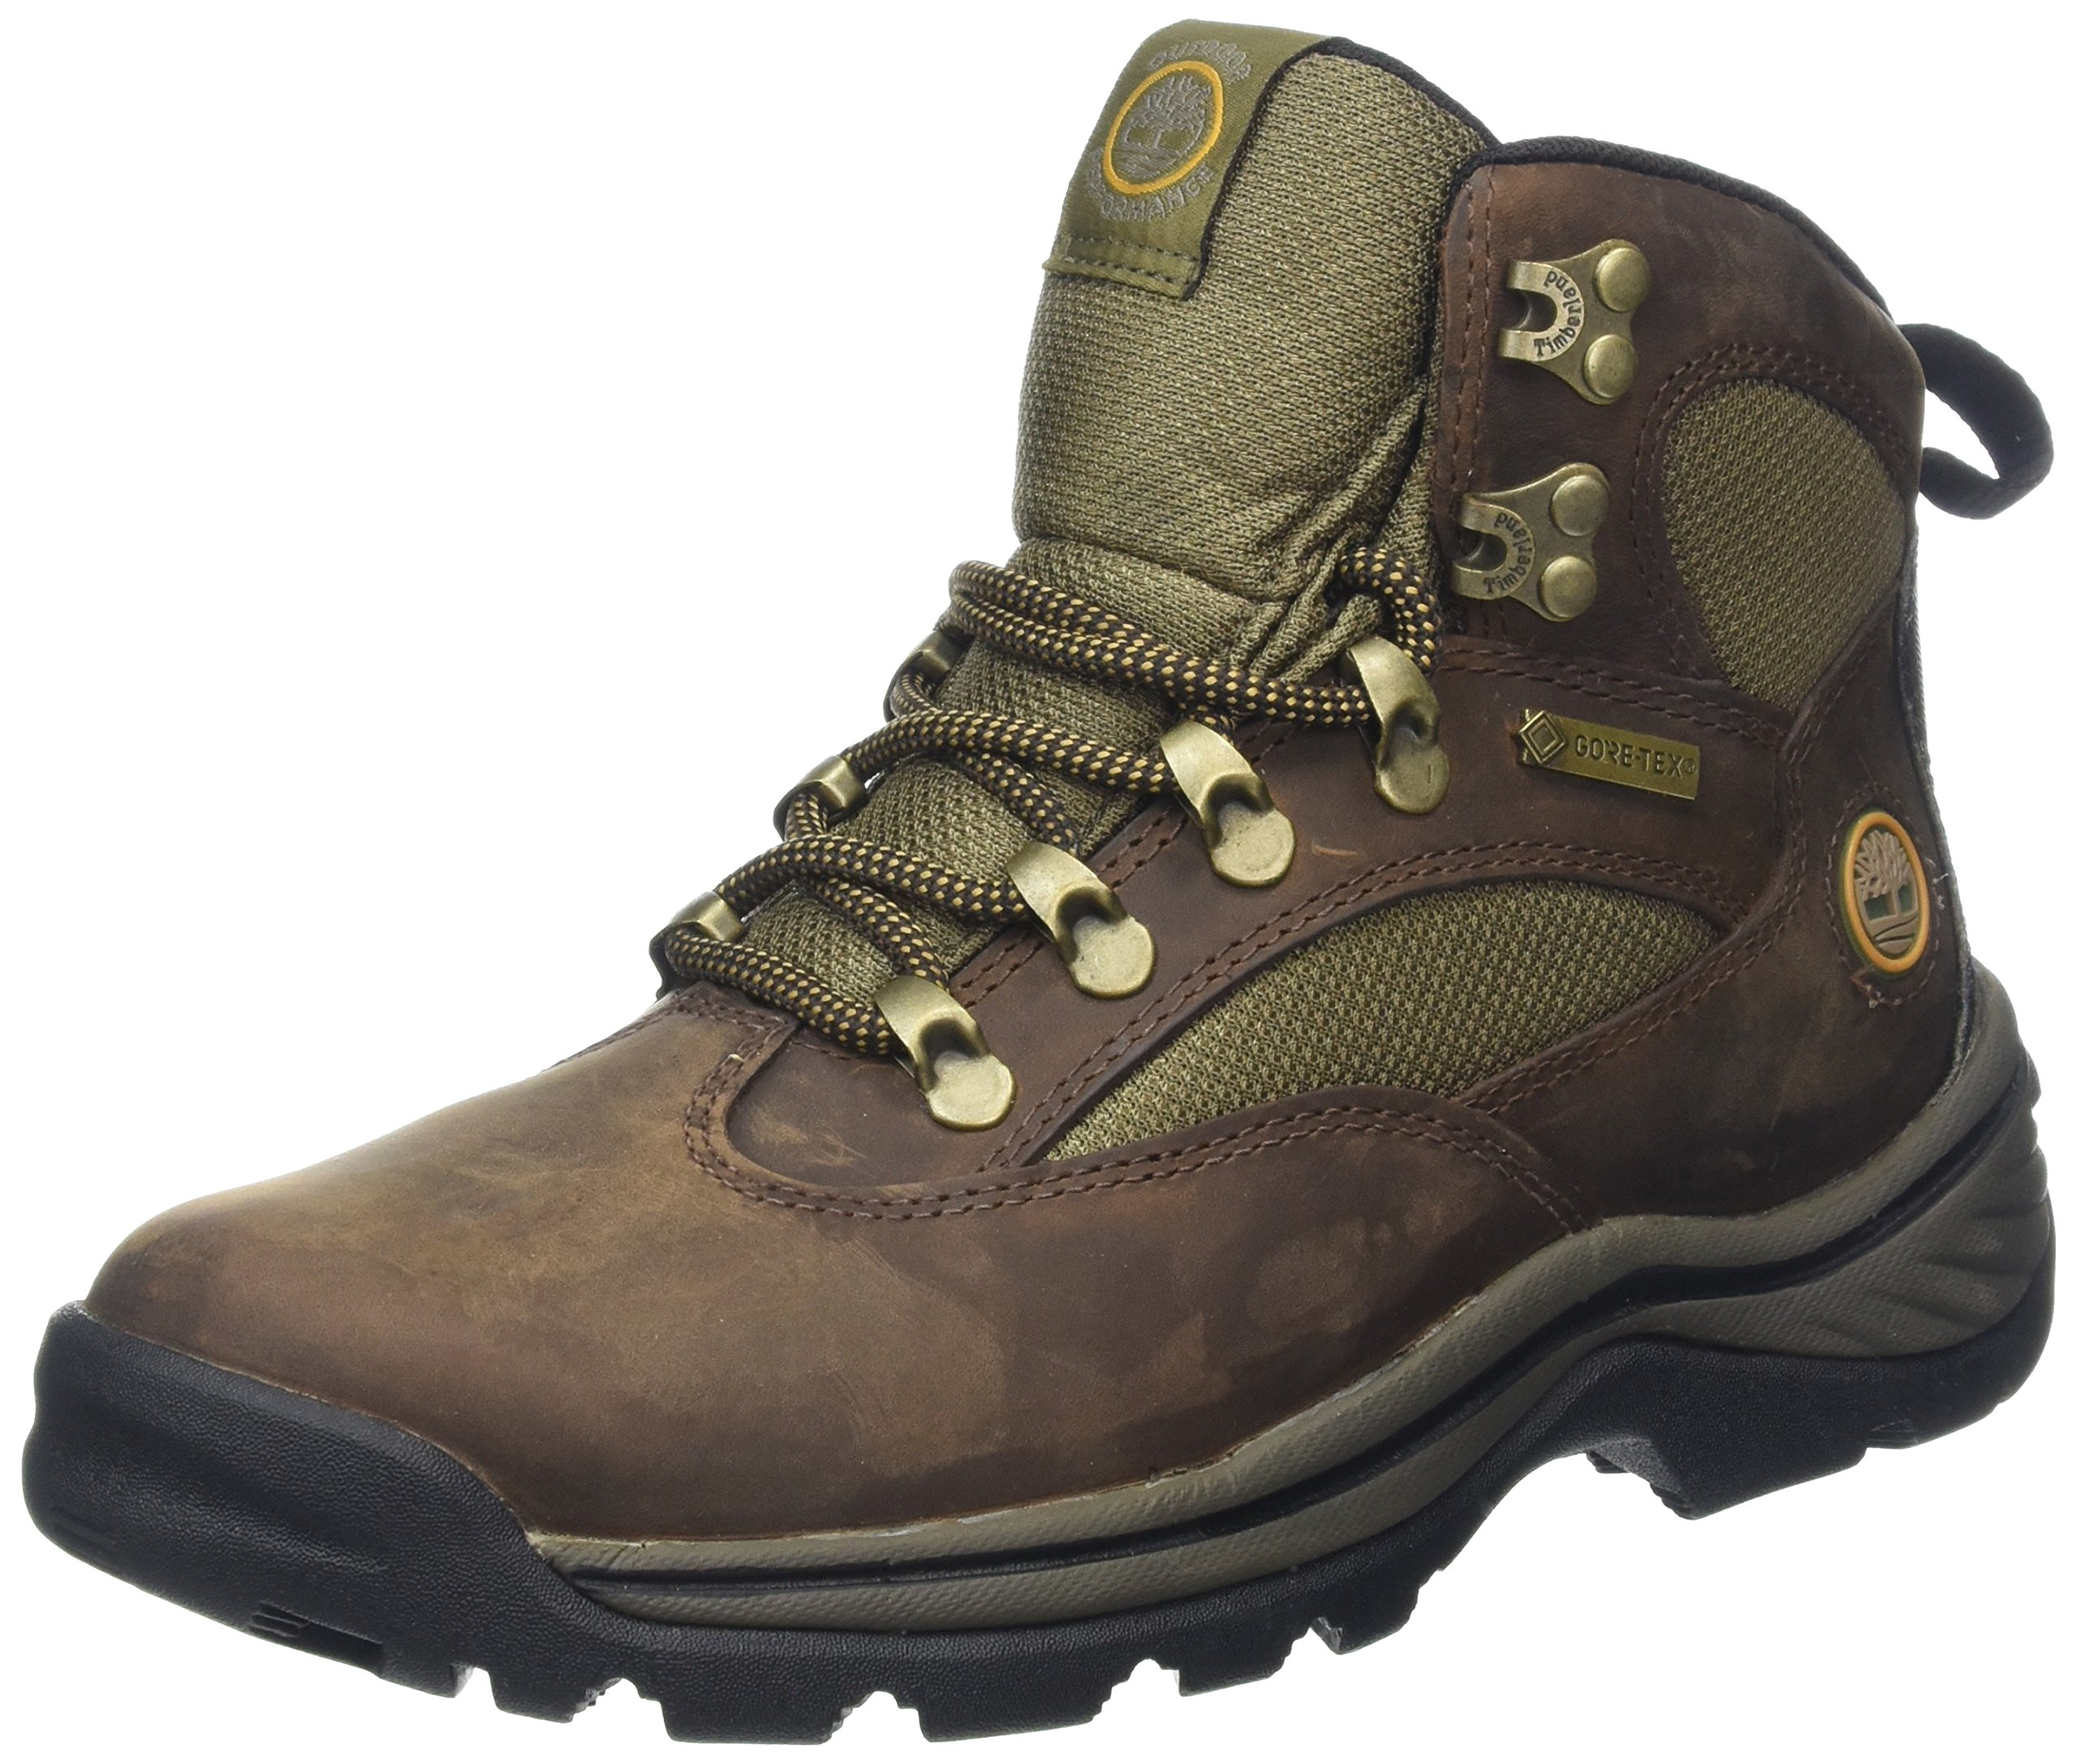 Timberland Women's Chocorua Trail Boot,Brown,8.5 W